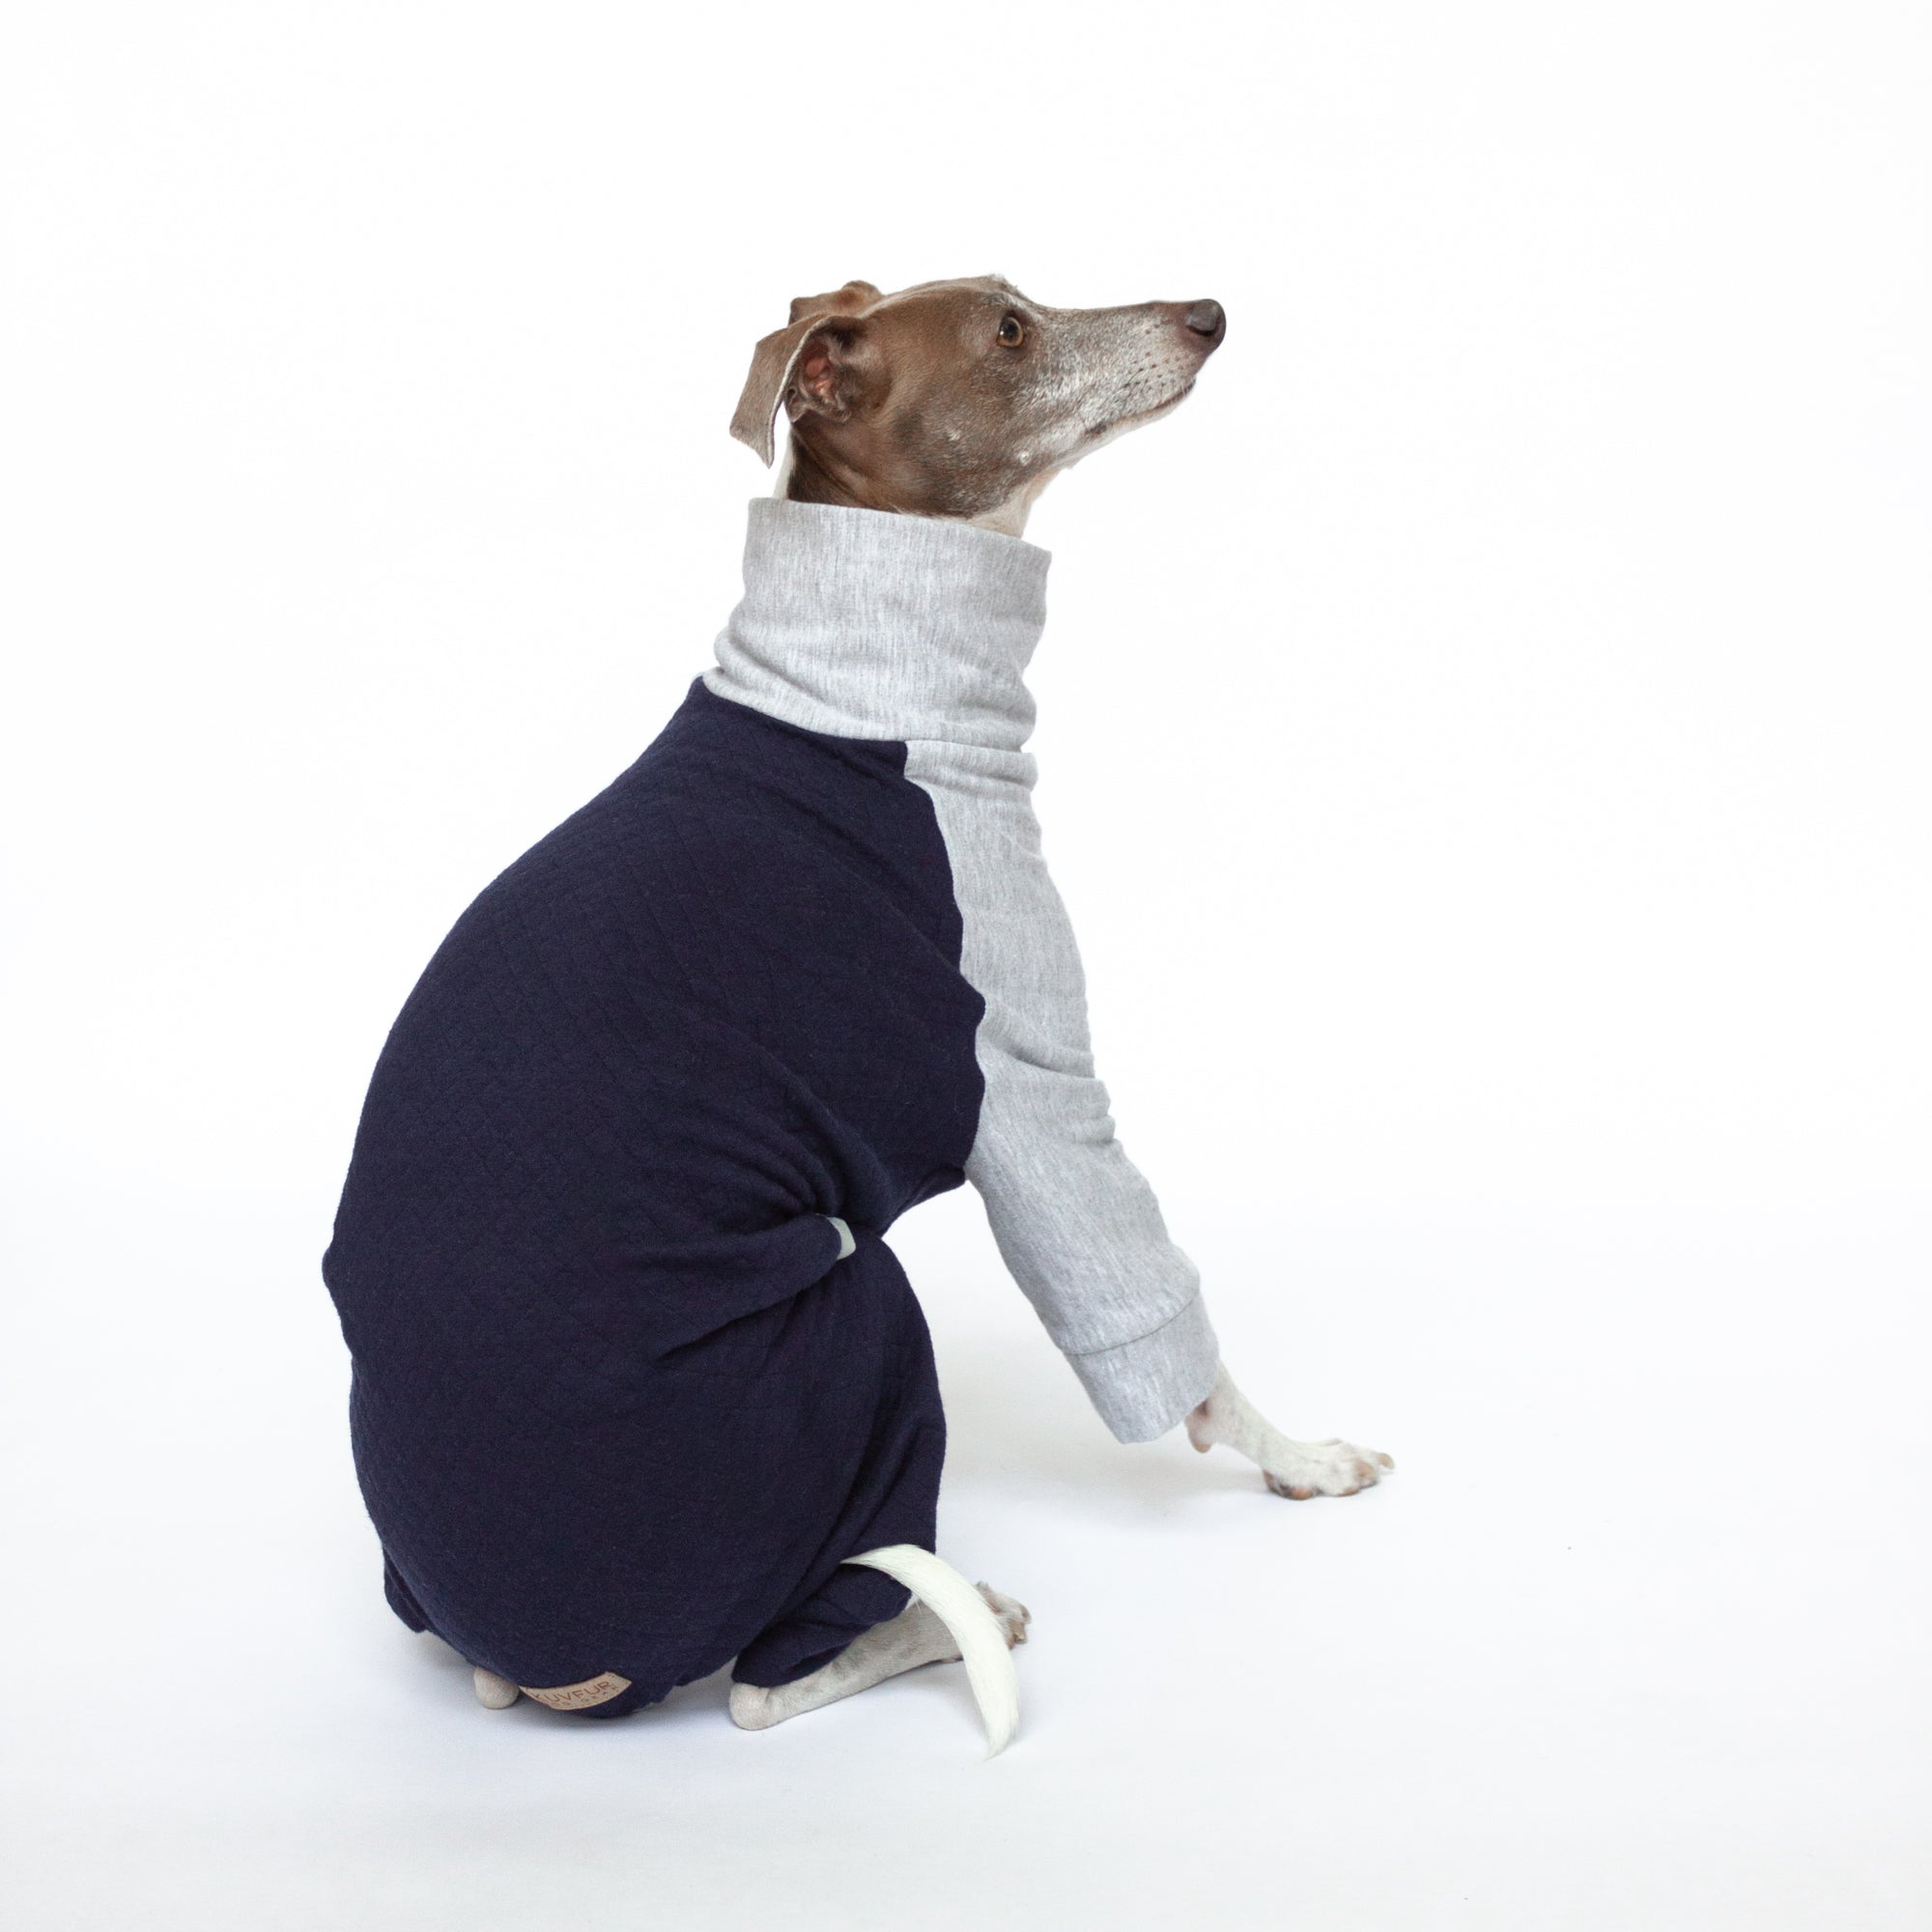 italian greyhound sitting in quilted dog pajamas navy blue and grey